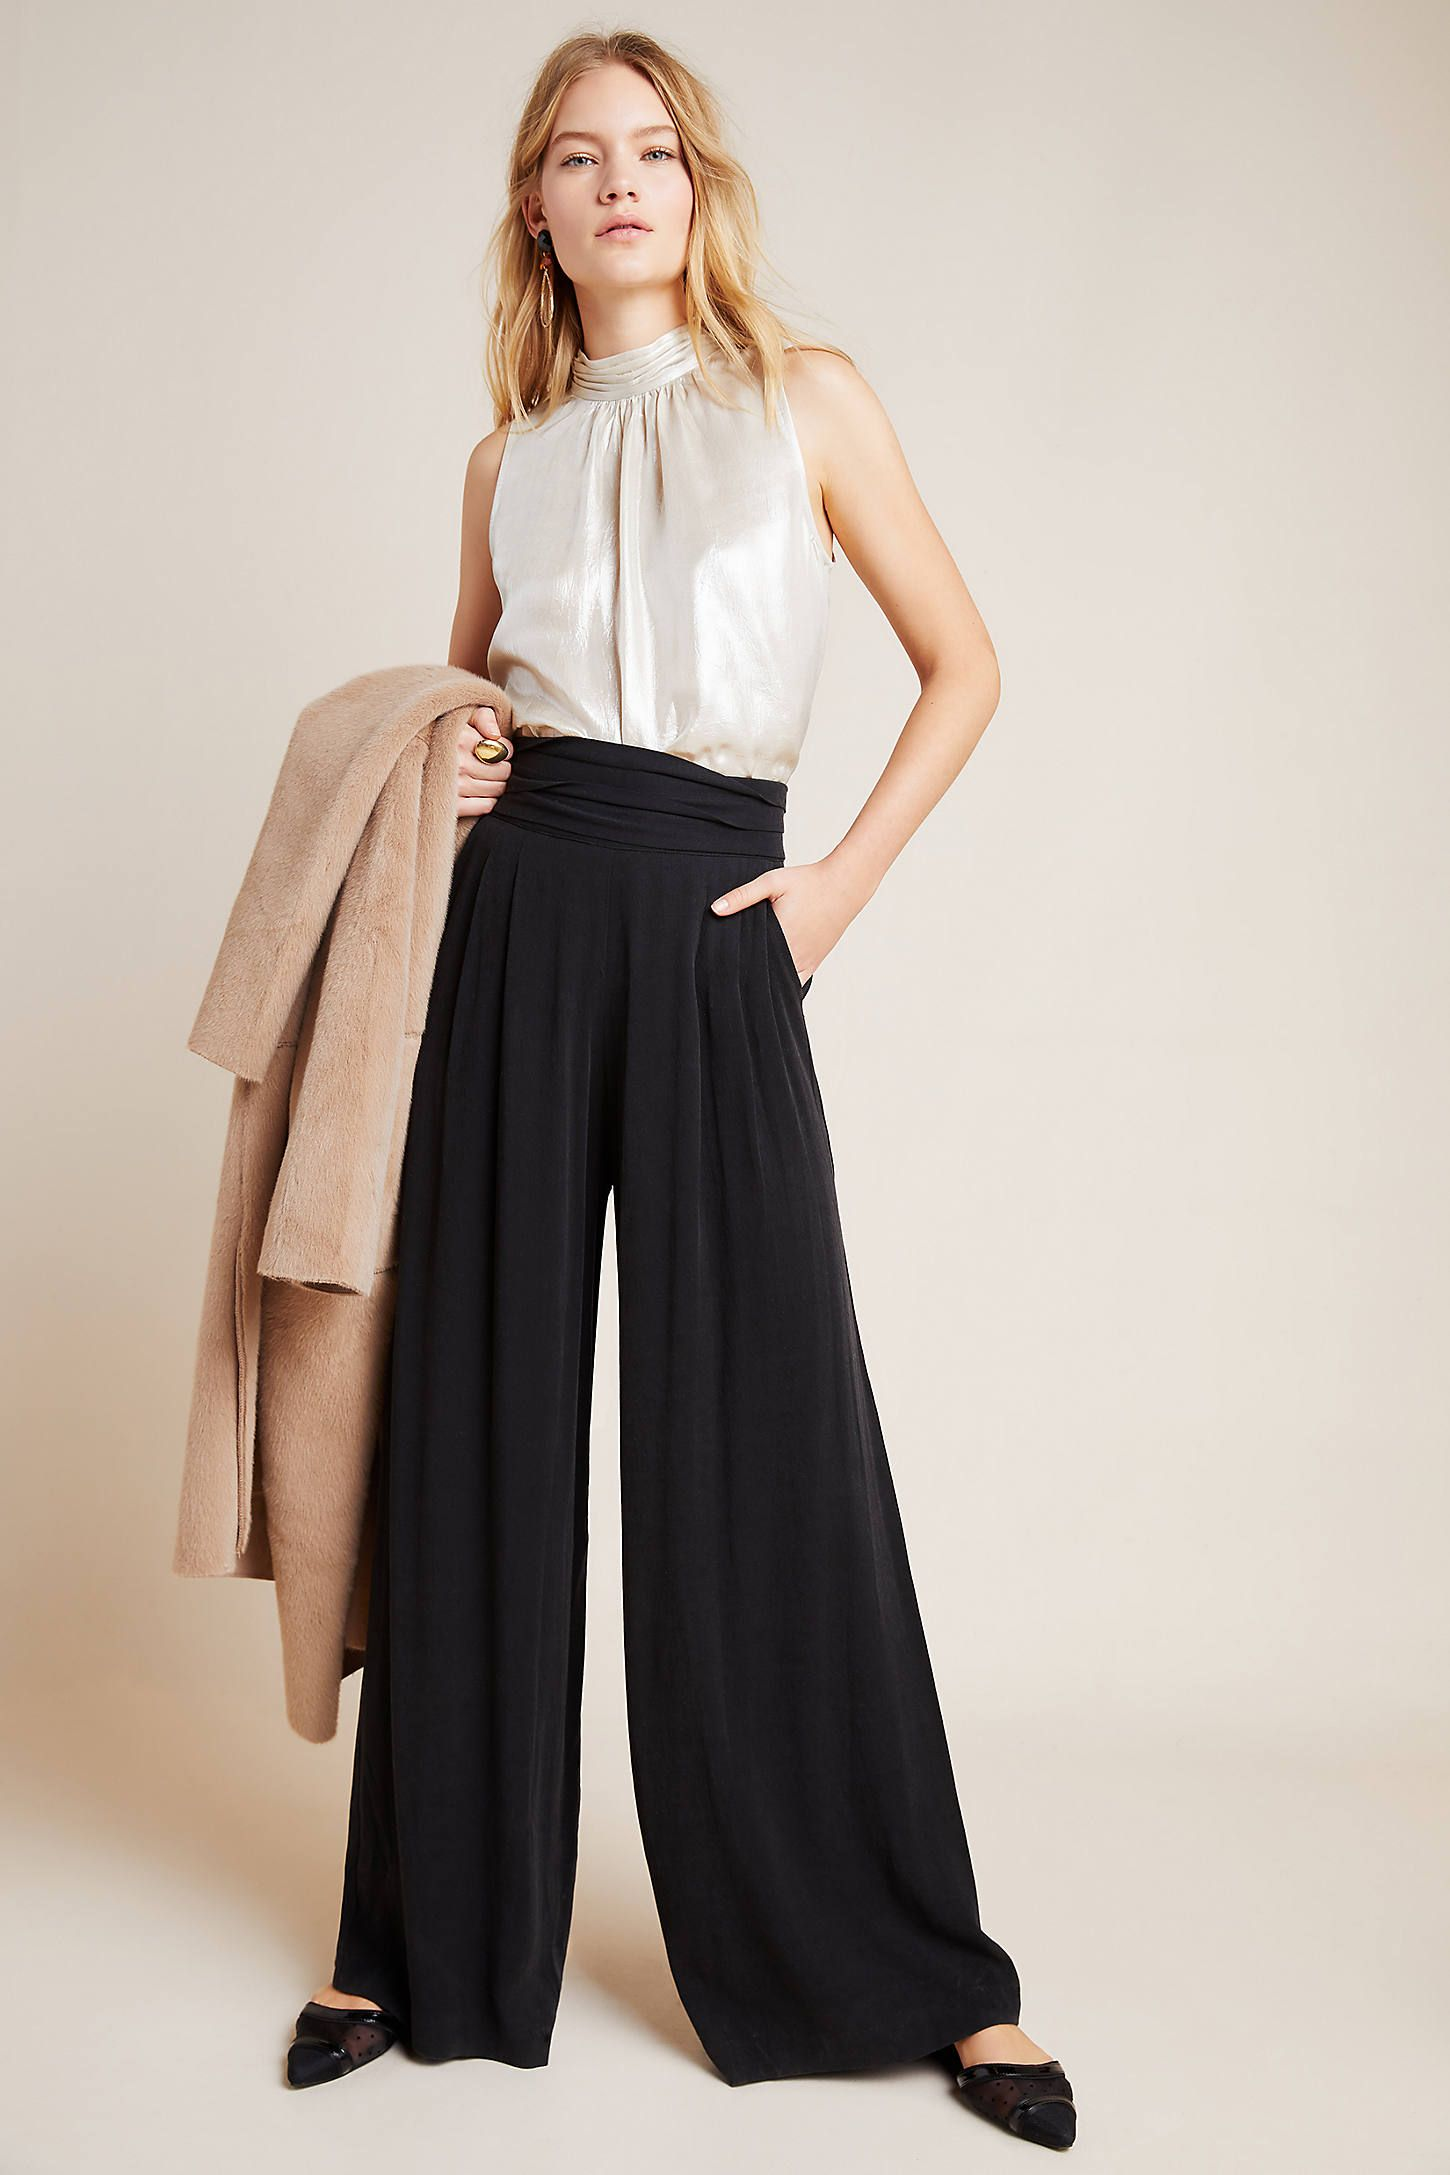 Ophelia Wide-Leg Trousers by The Odells in Black Size: S, Women's Pants at Anthropologie 1